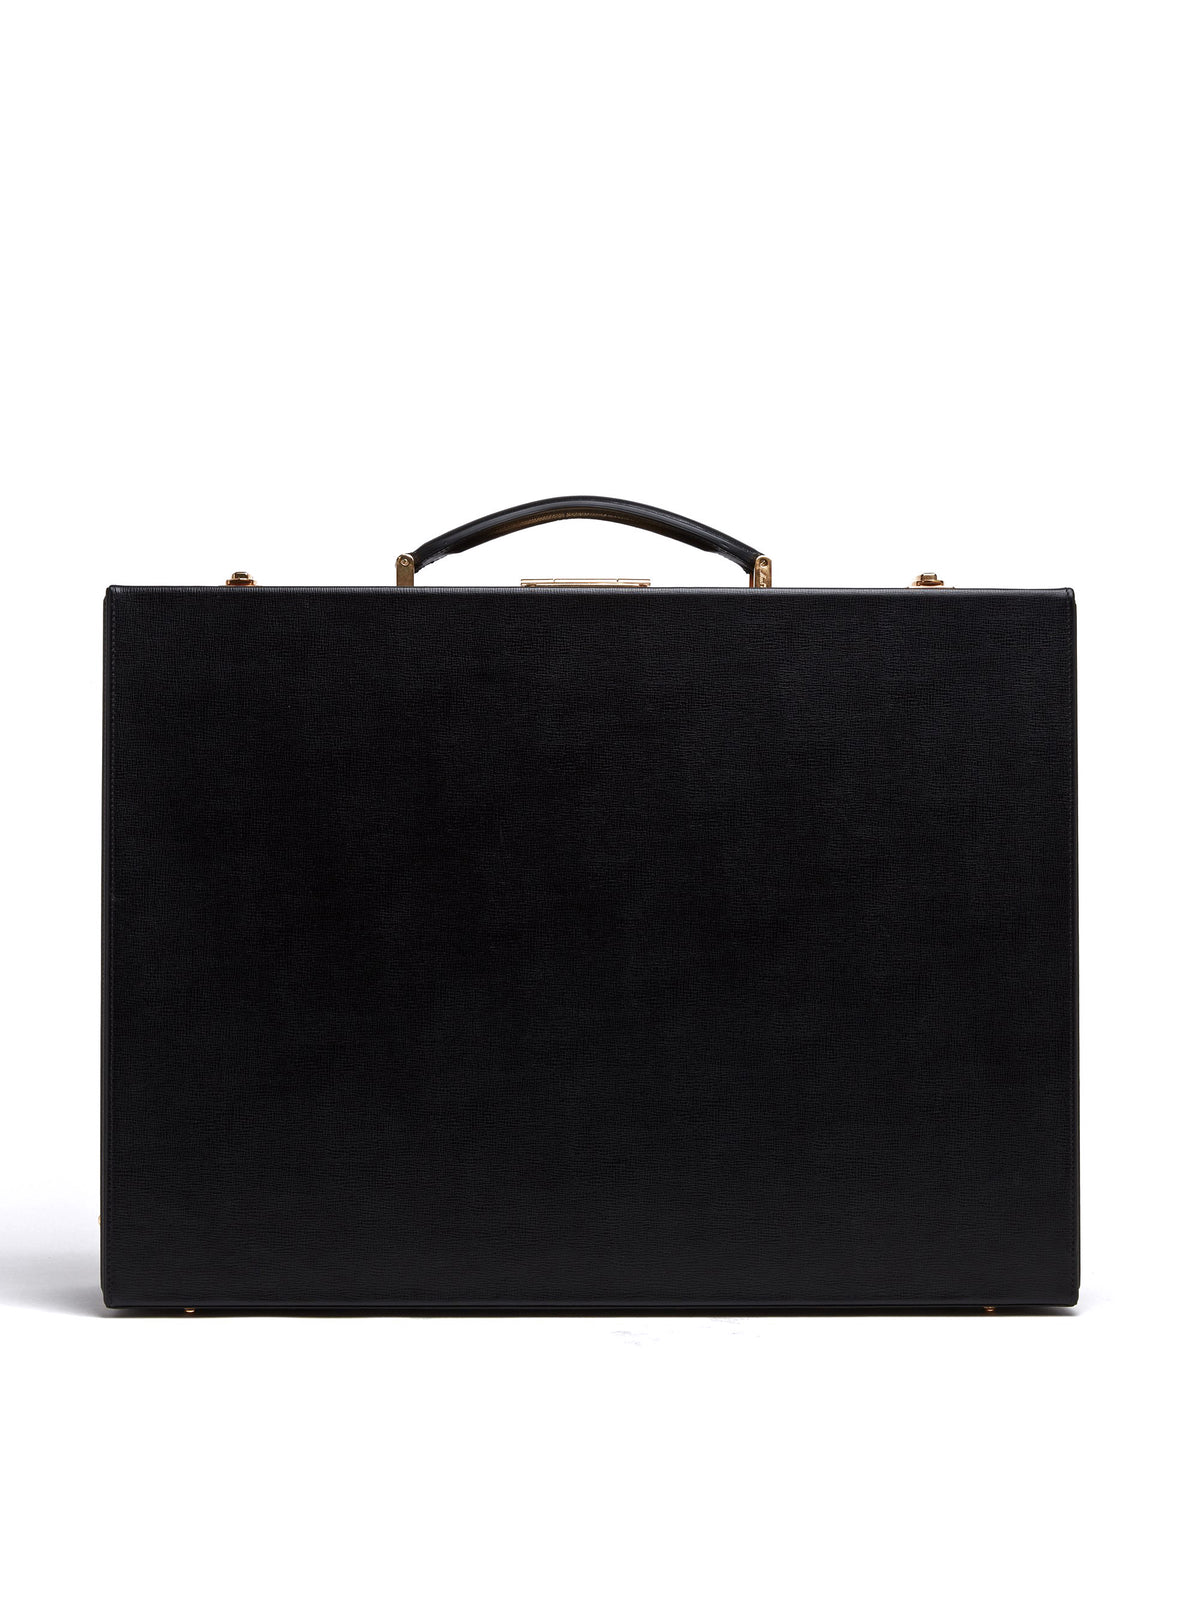 Mark Cross Grace Medium Leather Trunk Saffiano Black Front